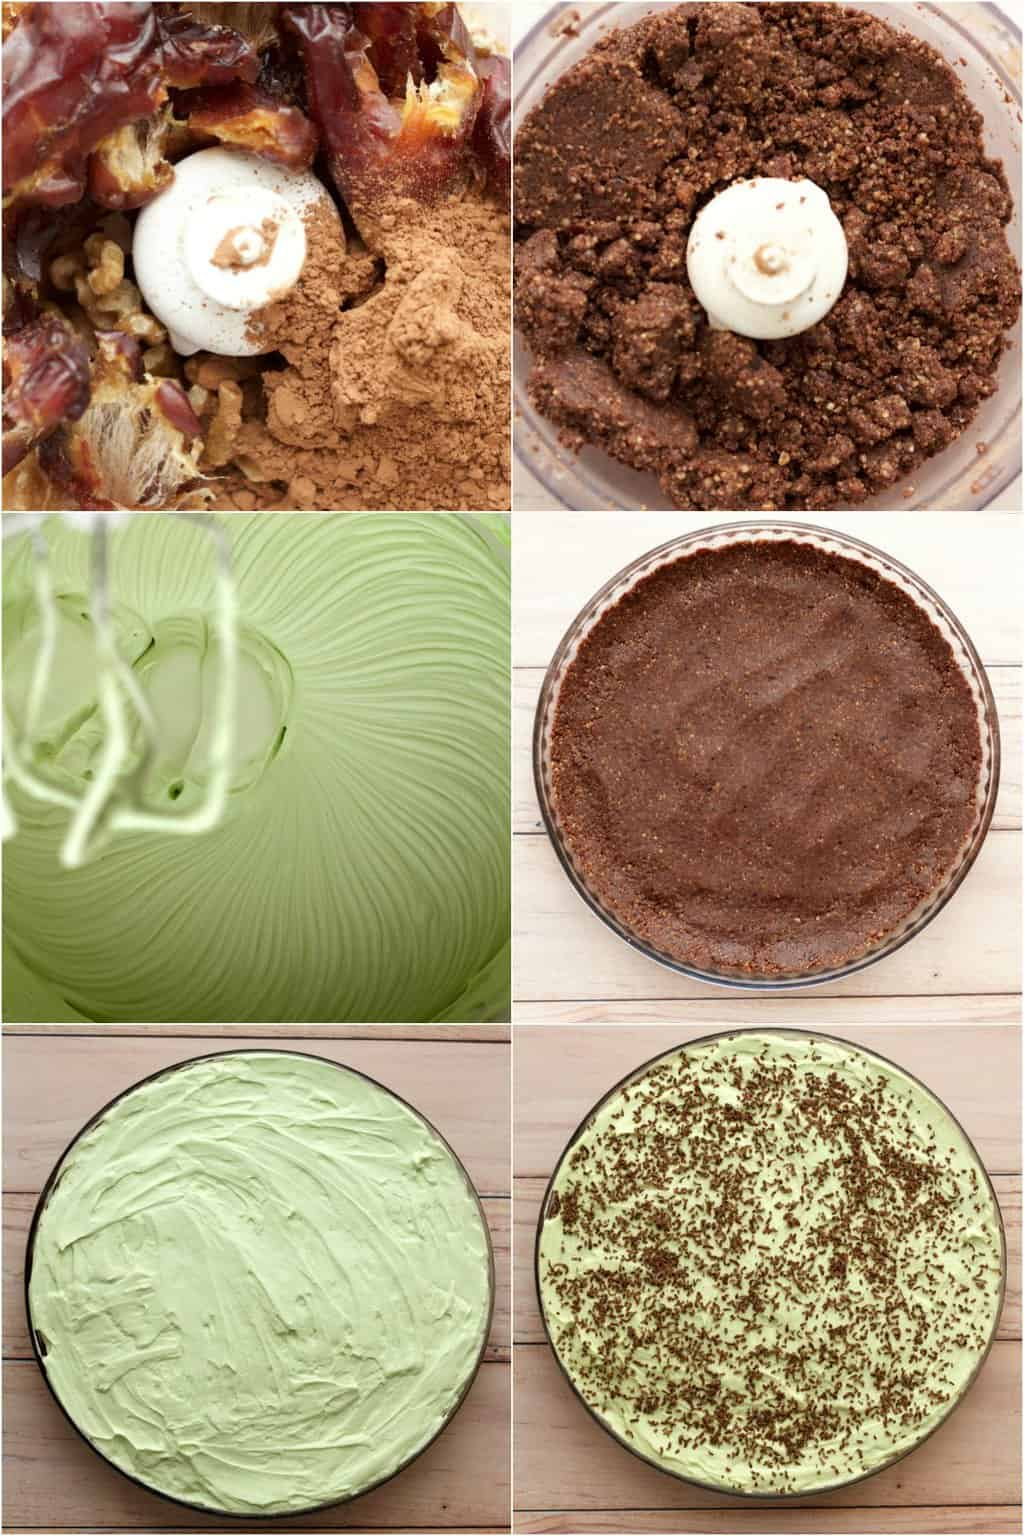 Step by step process photo collage of making a vegan grasshopper pie.